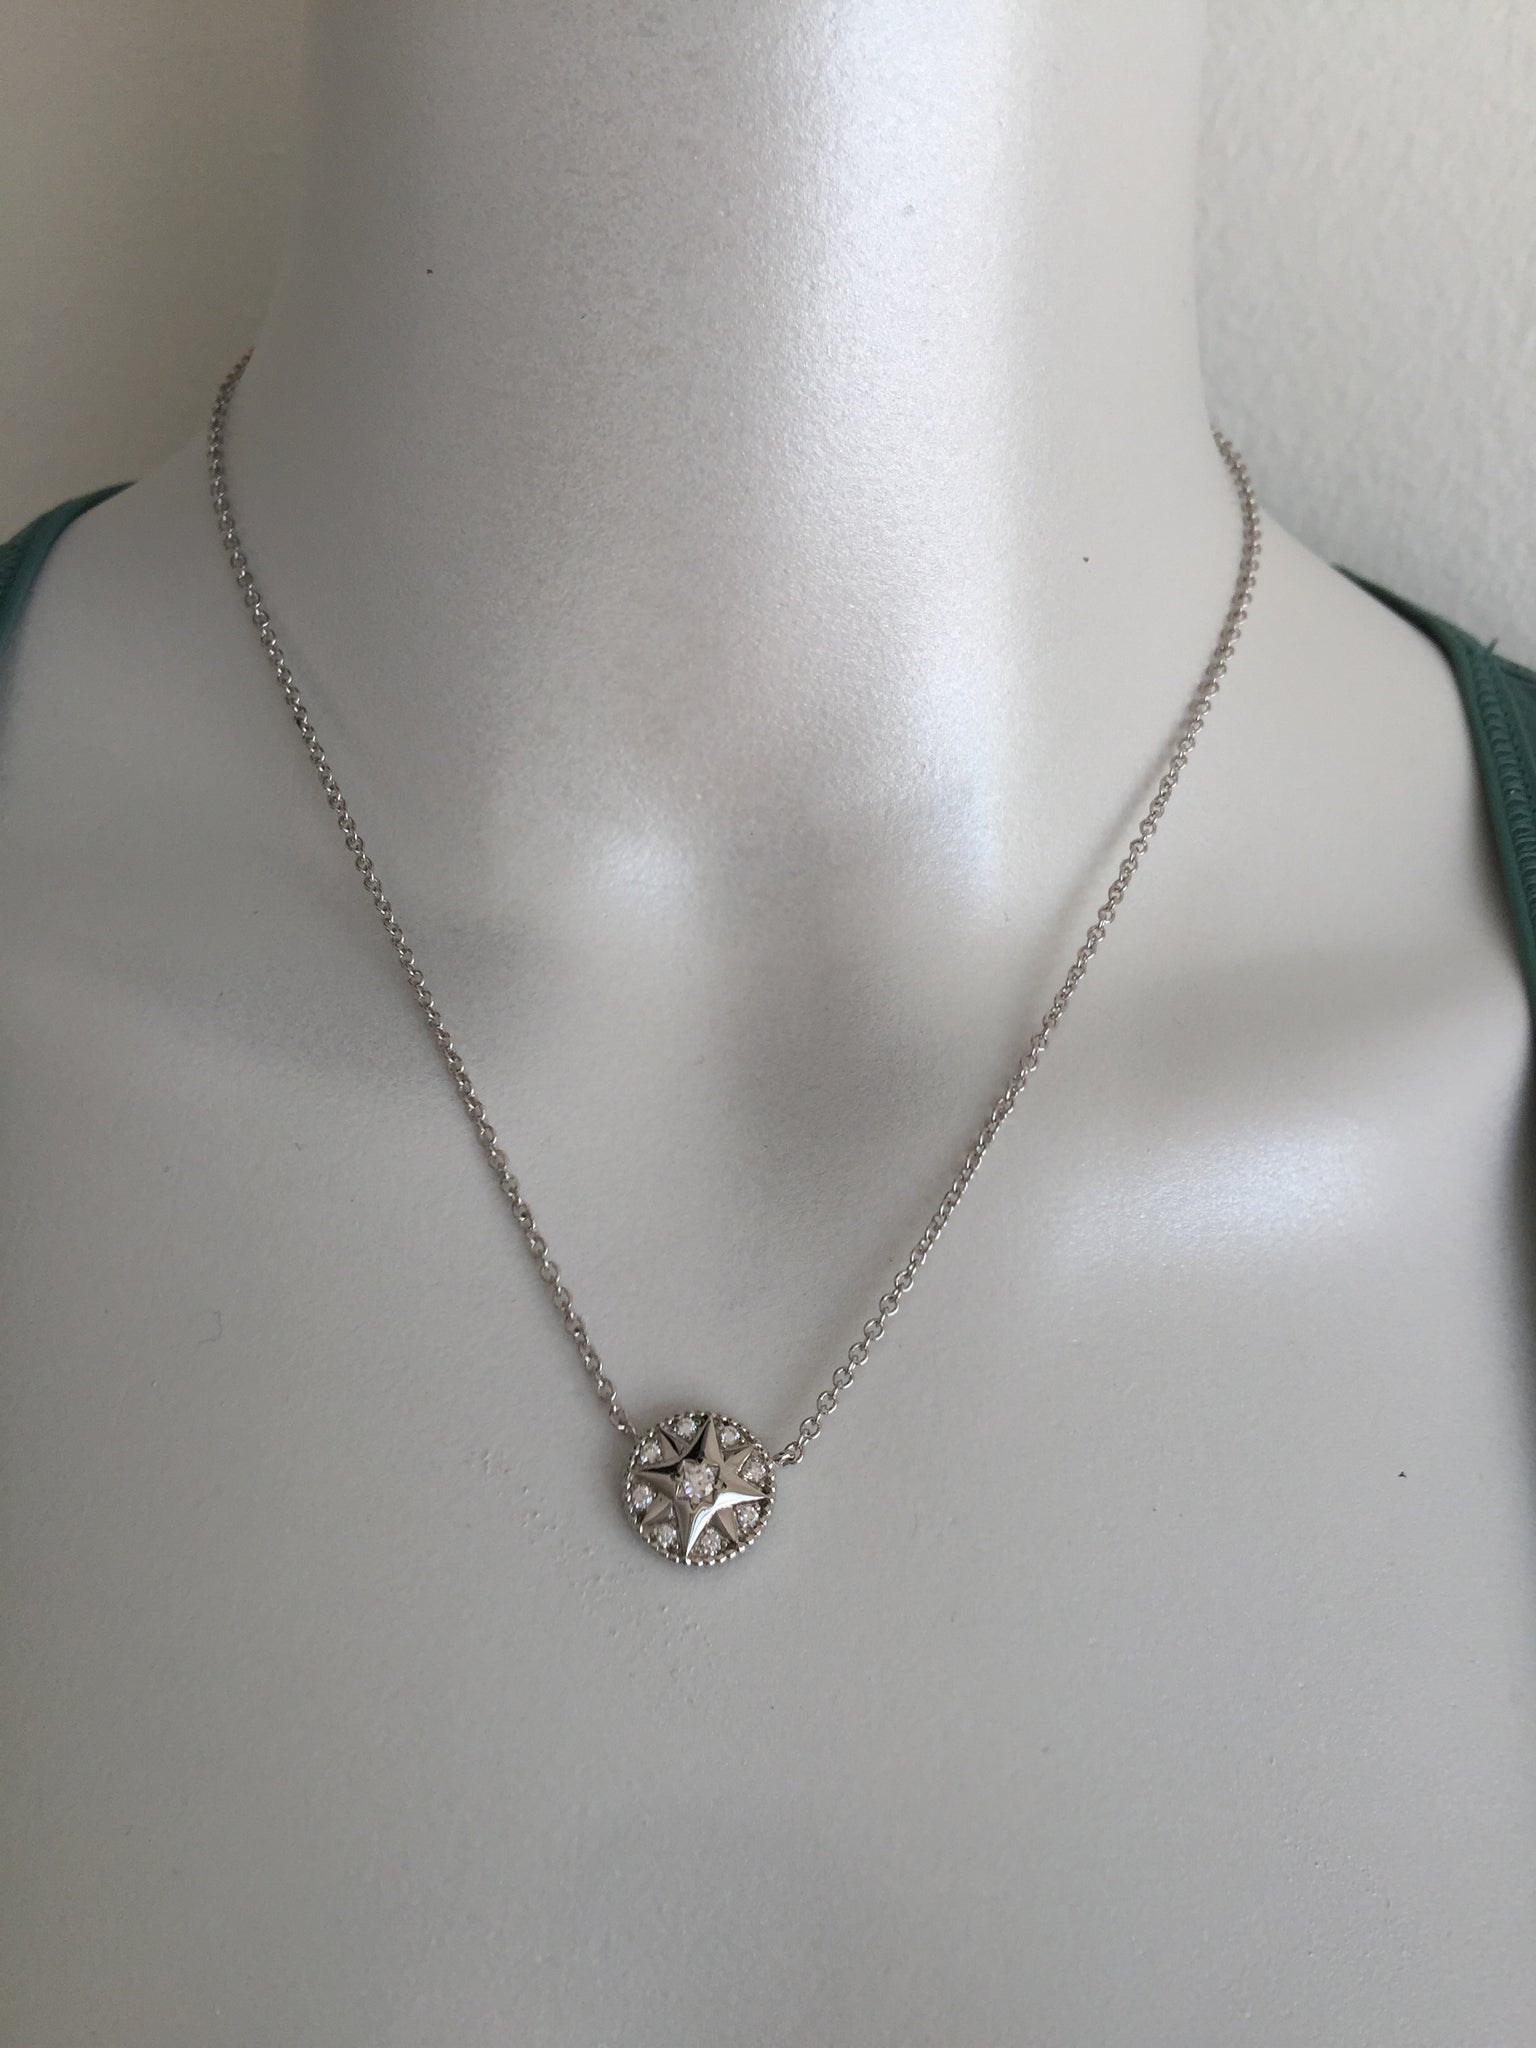 Christian Dior Crystal Rose Des Vents 18K WHITE GOLD AND DIAMONDS Necklace